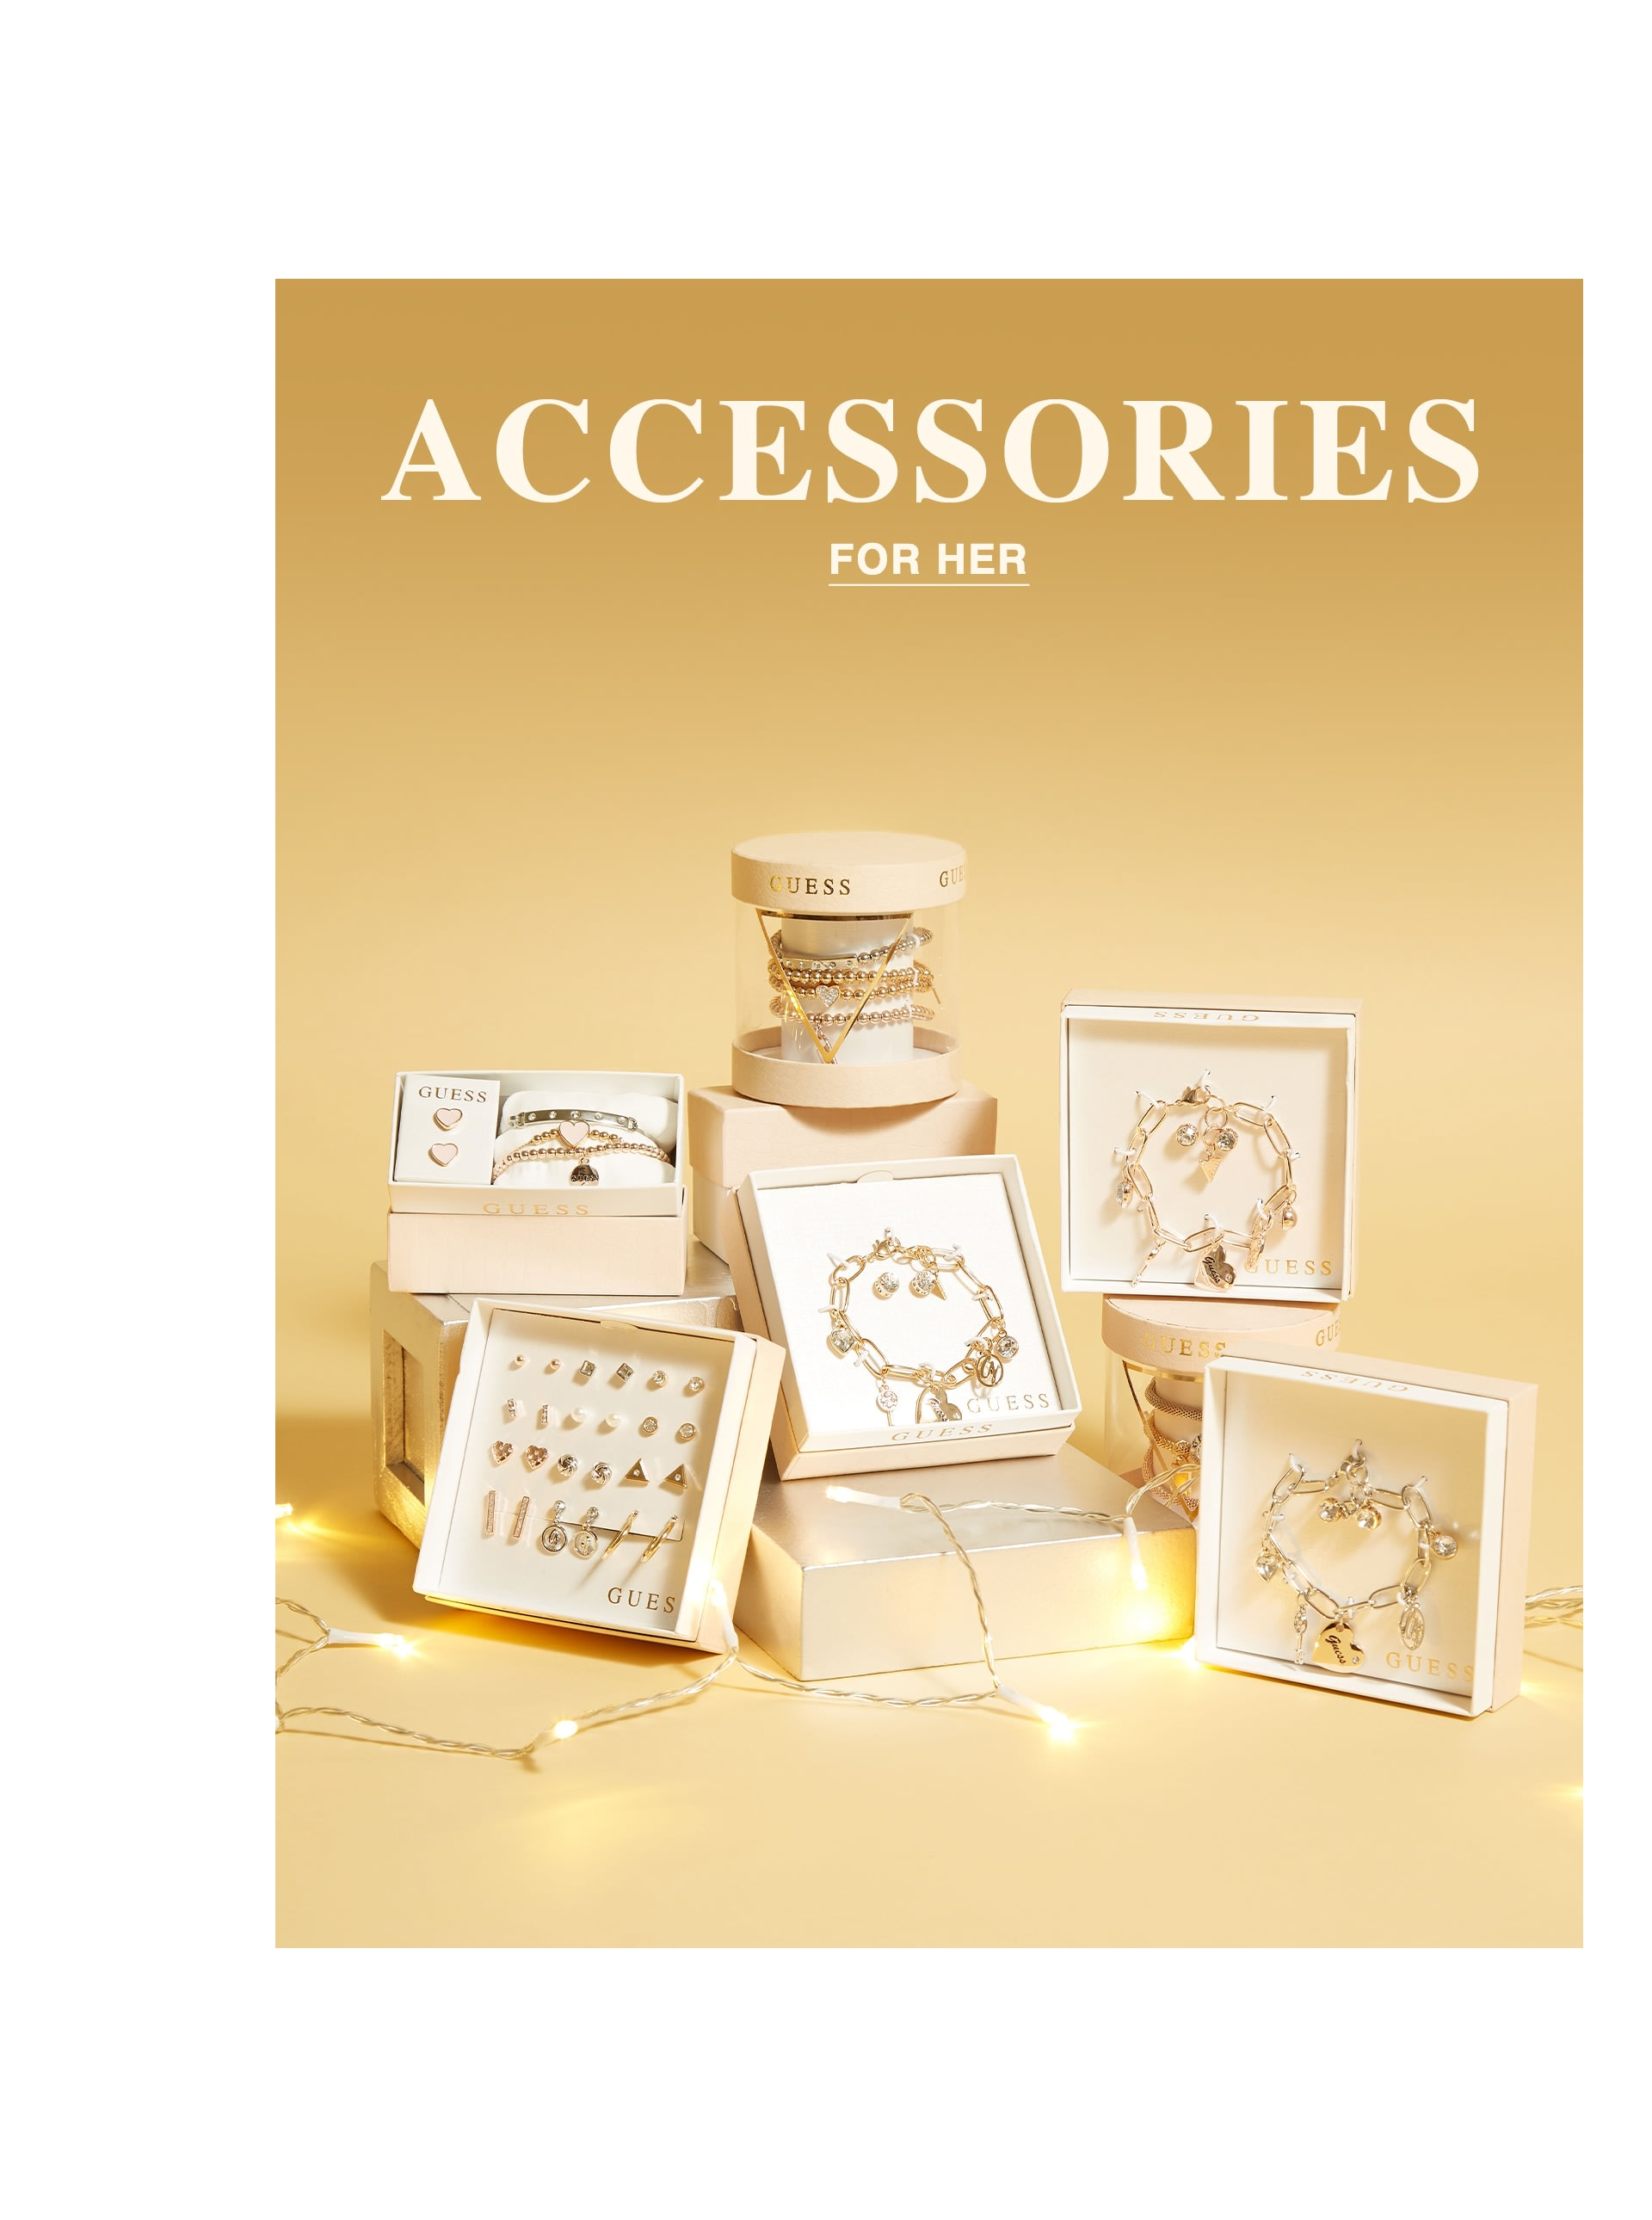 Accessories for Her